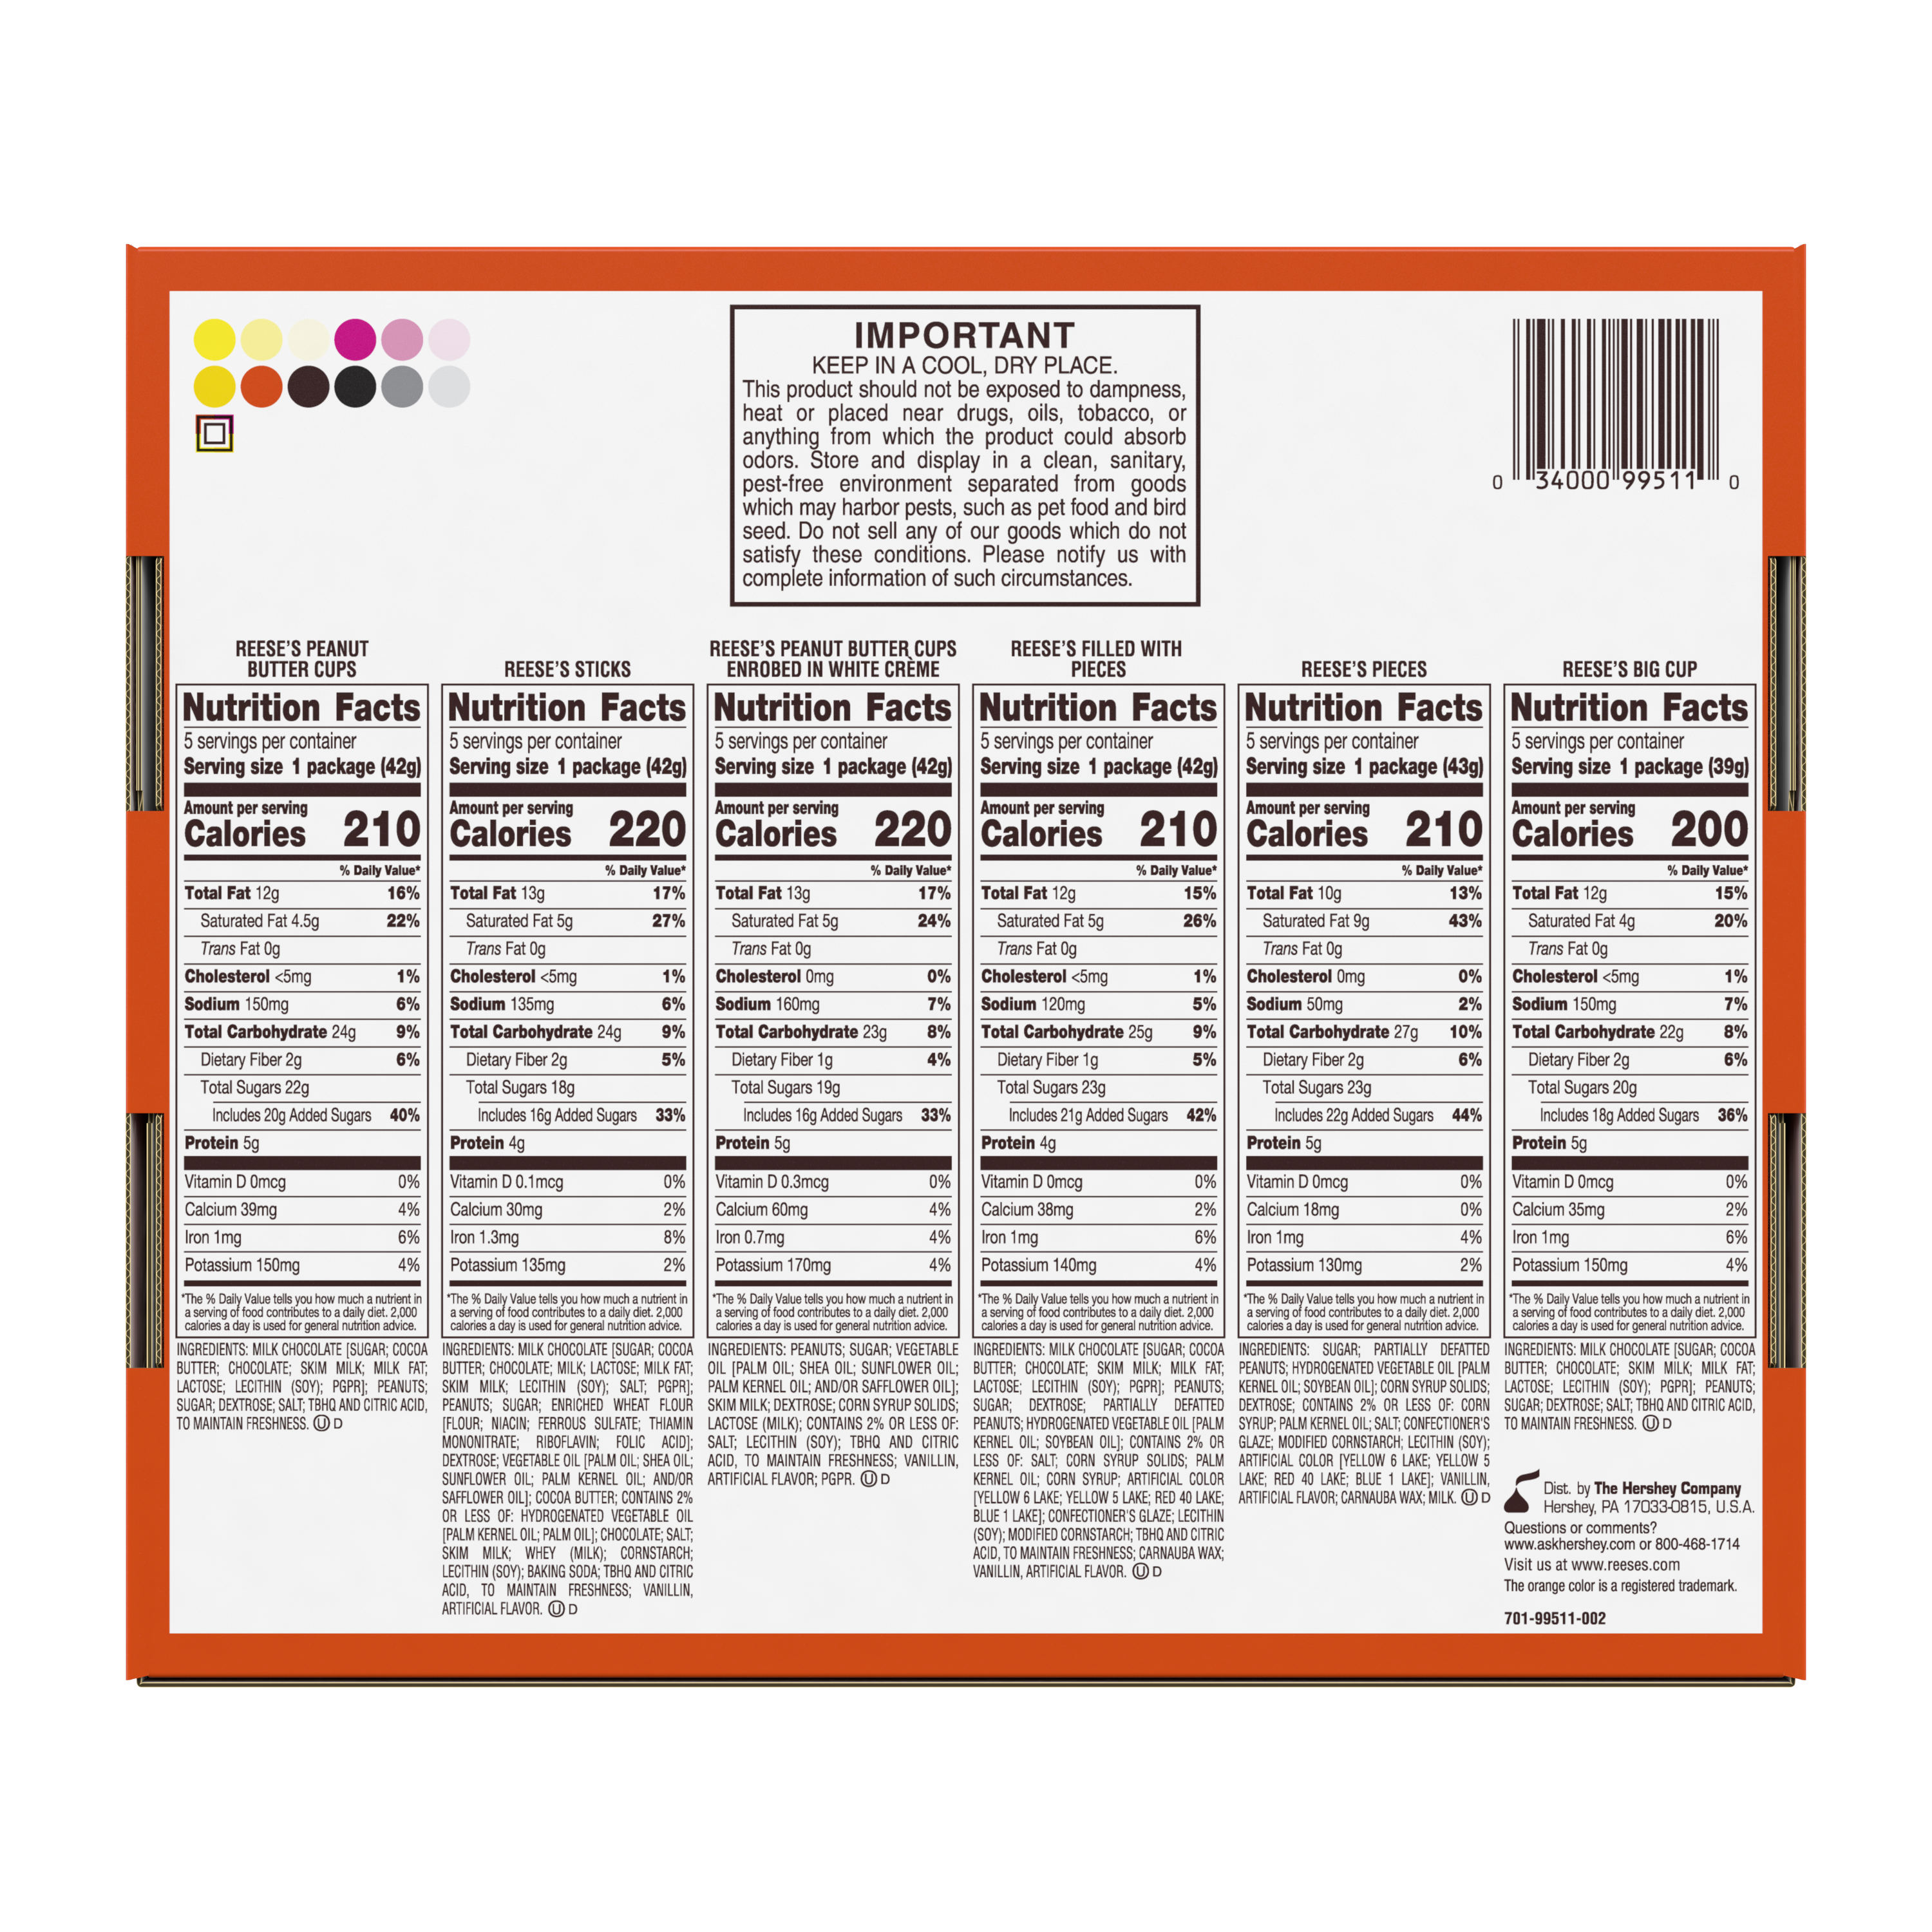 REESE'S Variety Peanut Butter Candy Bars, 44.65 oz box, 30 pack - Back of Package